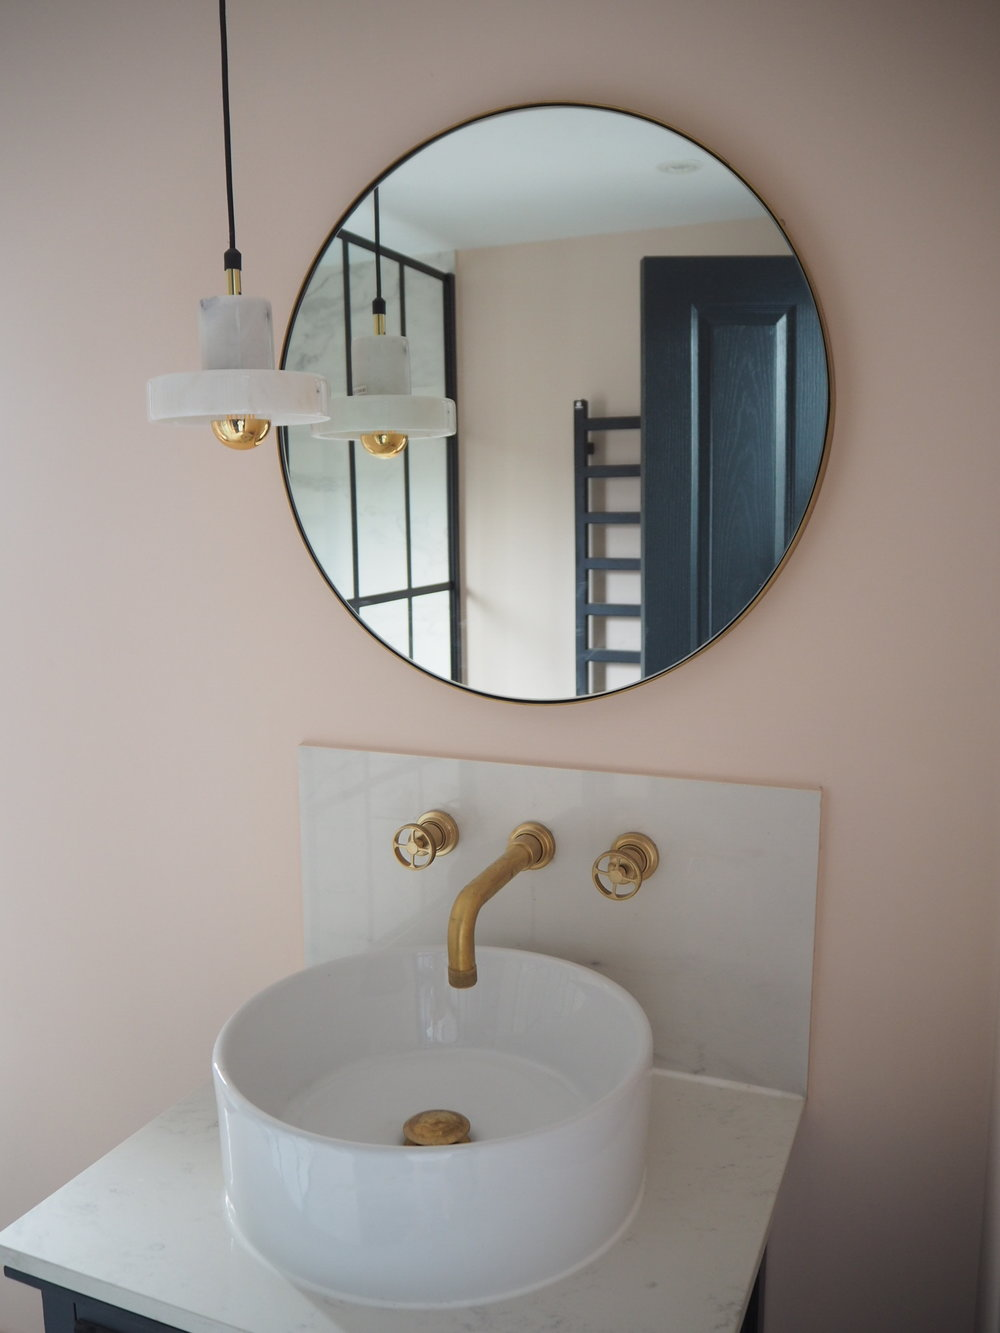 Farrow and ball pink ground bathroom, aston matthews taps and loaf mirror